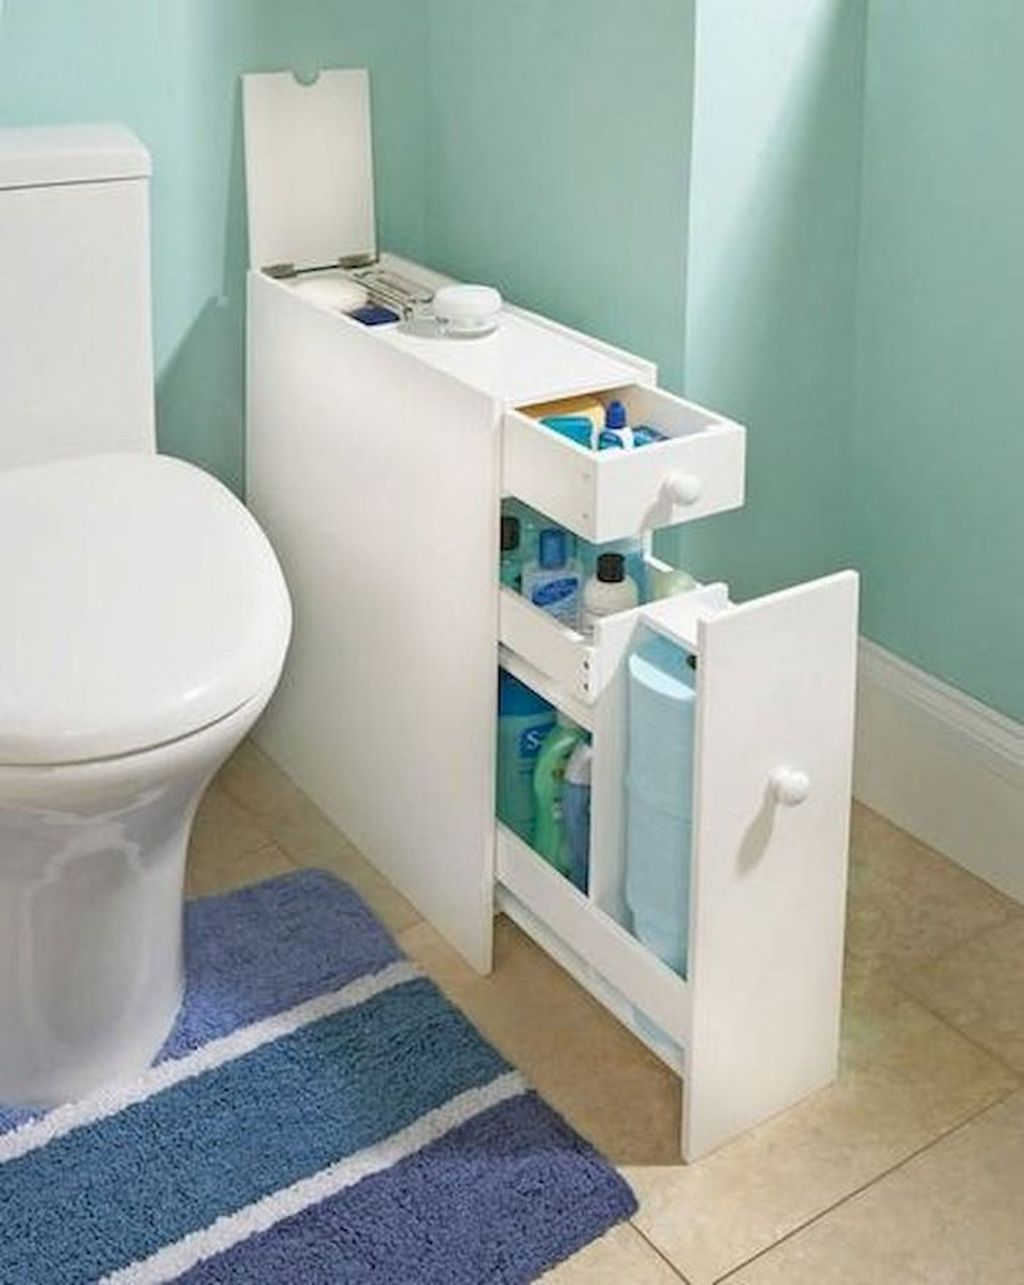 Amazing Bathroom Storage Design Ideas For Small Space 10